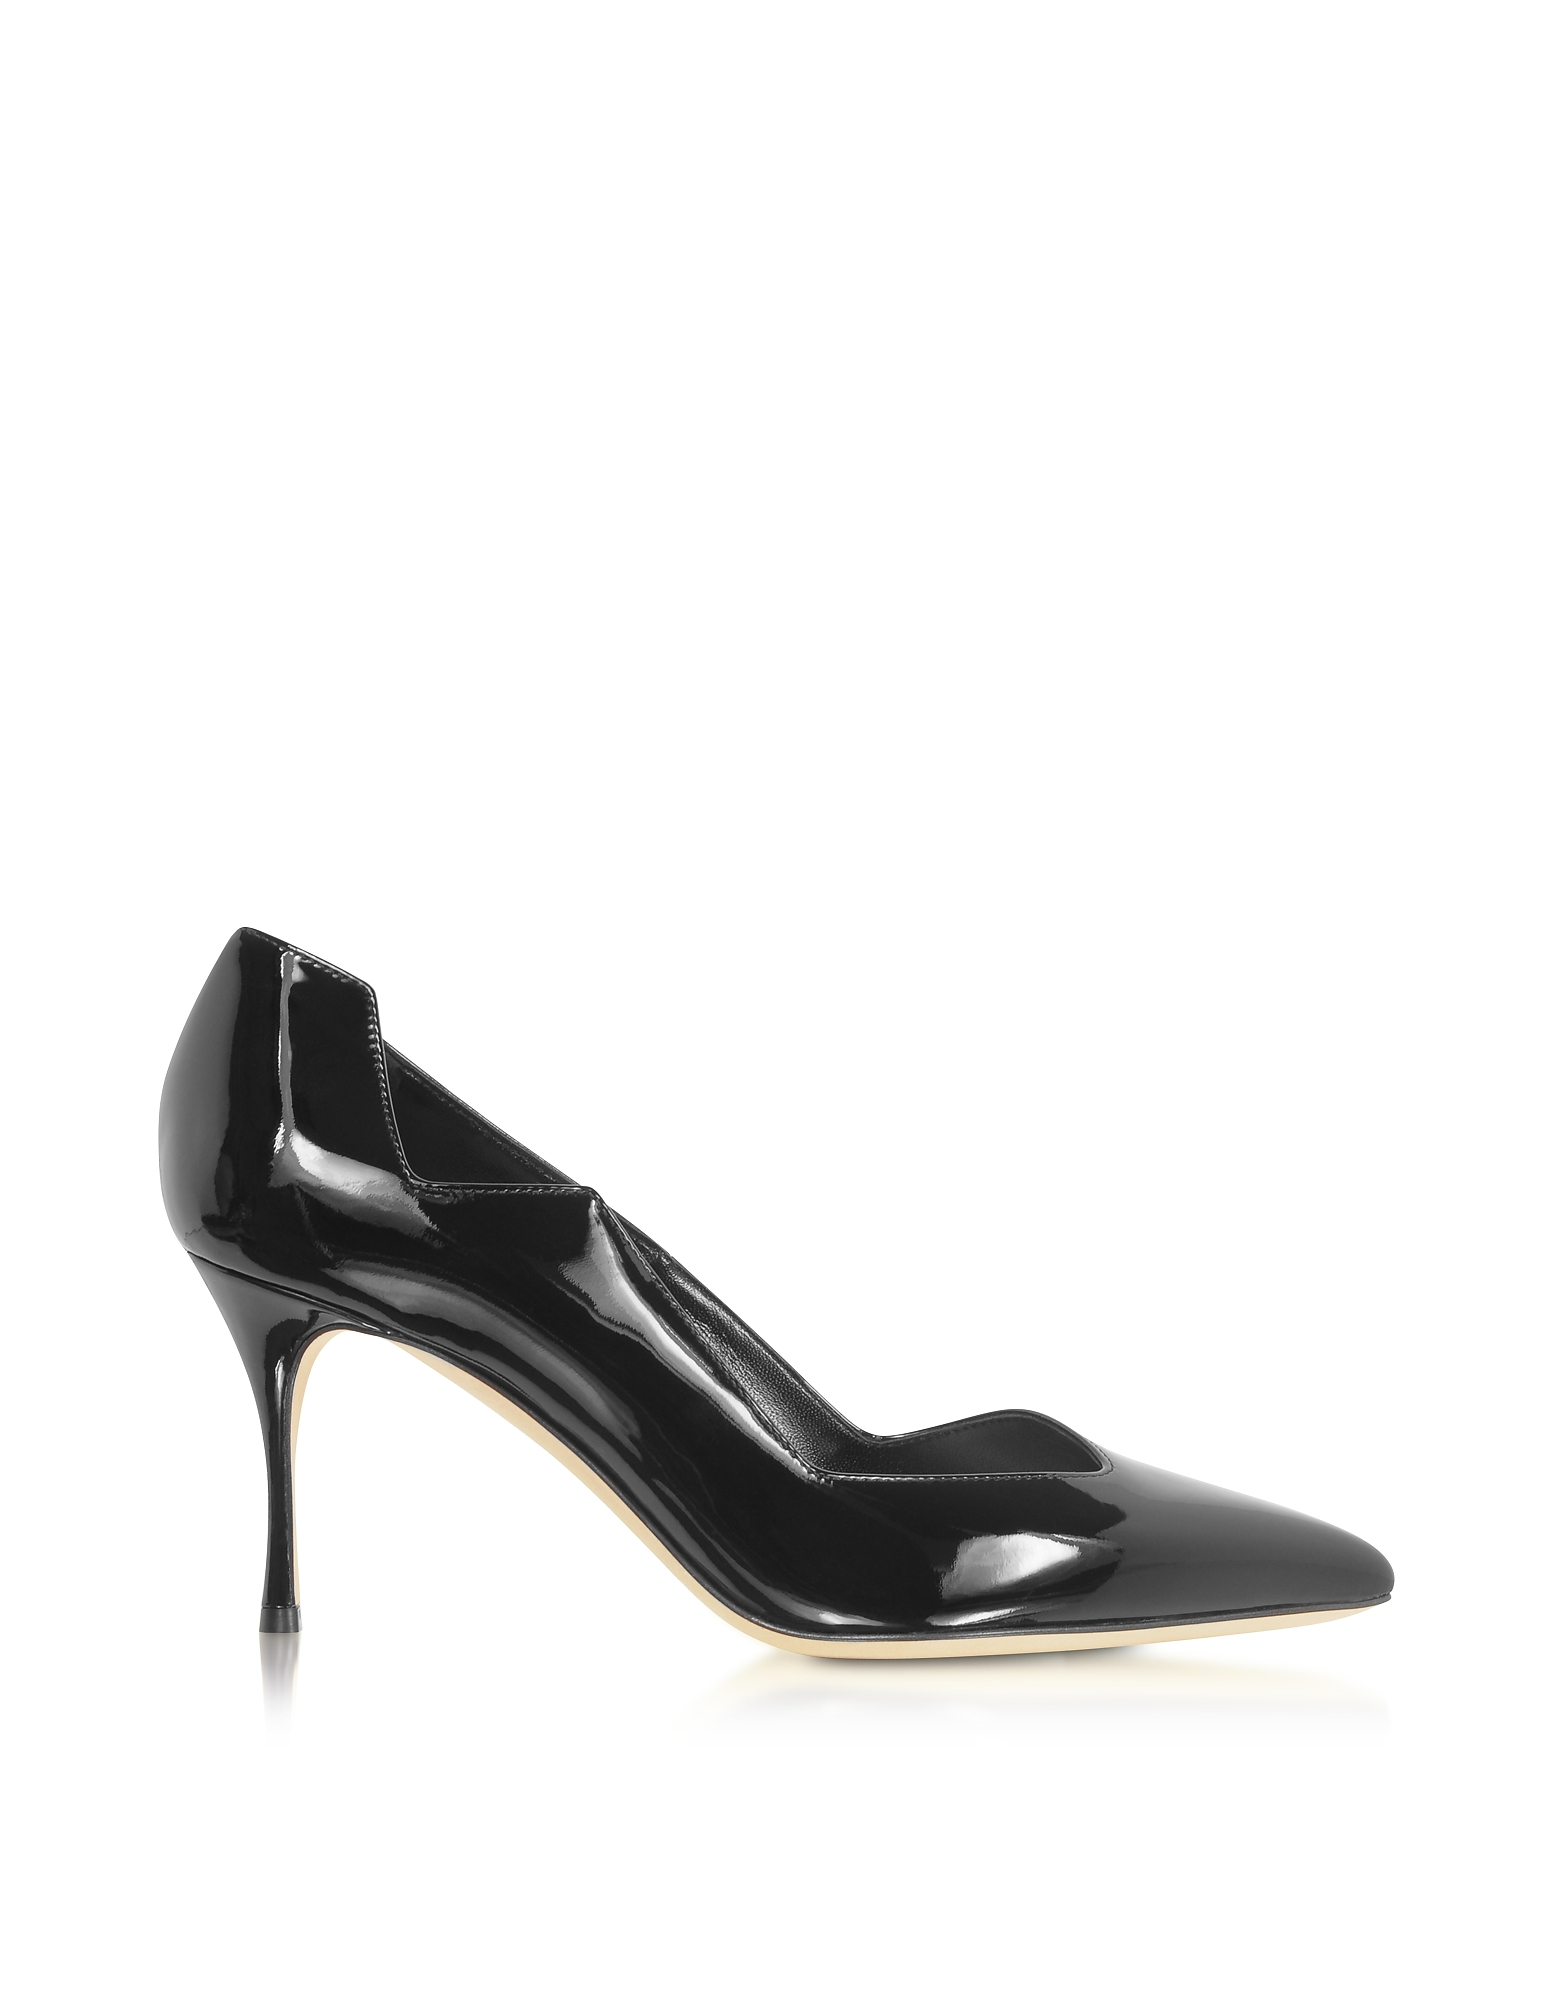 Sergio Rossi Designer Shoes, Black Soft Patent Leather Godiva Waves Pumps